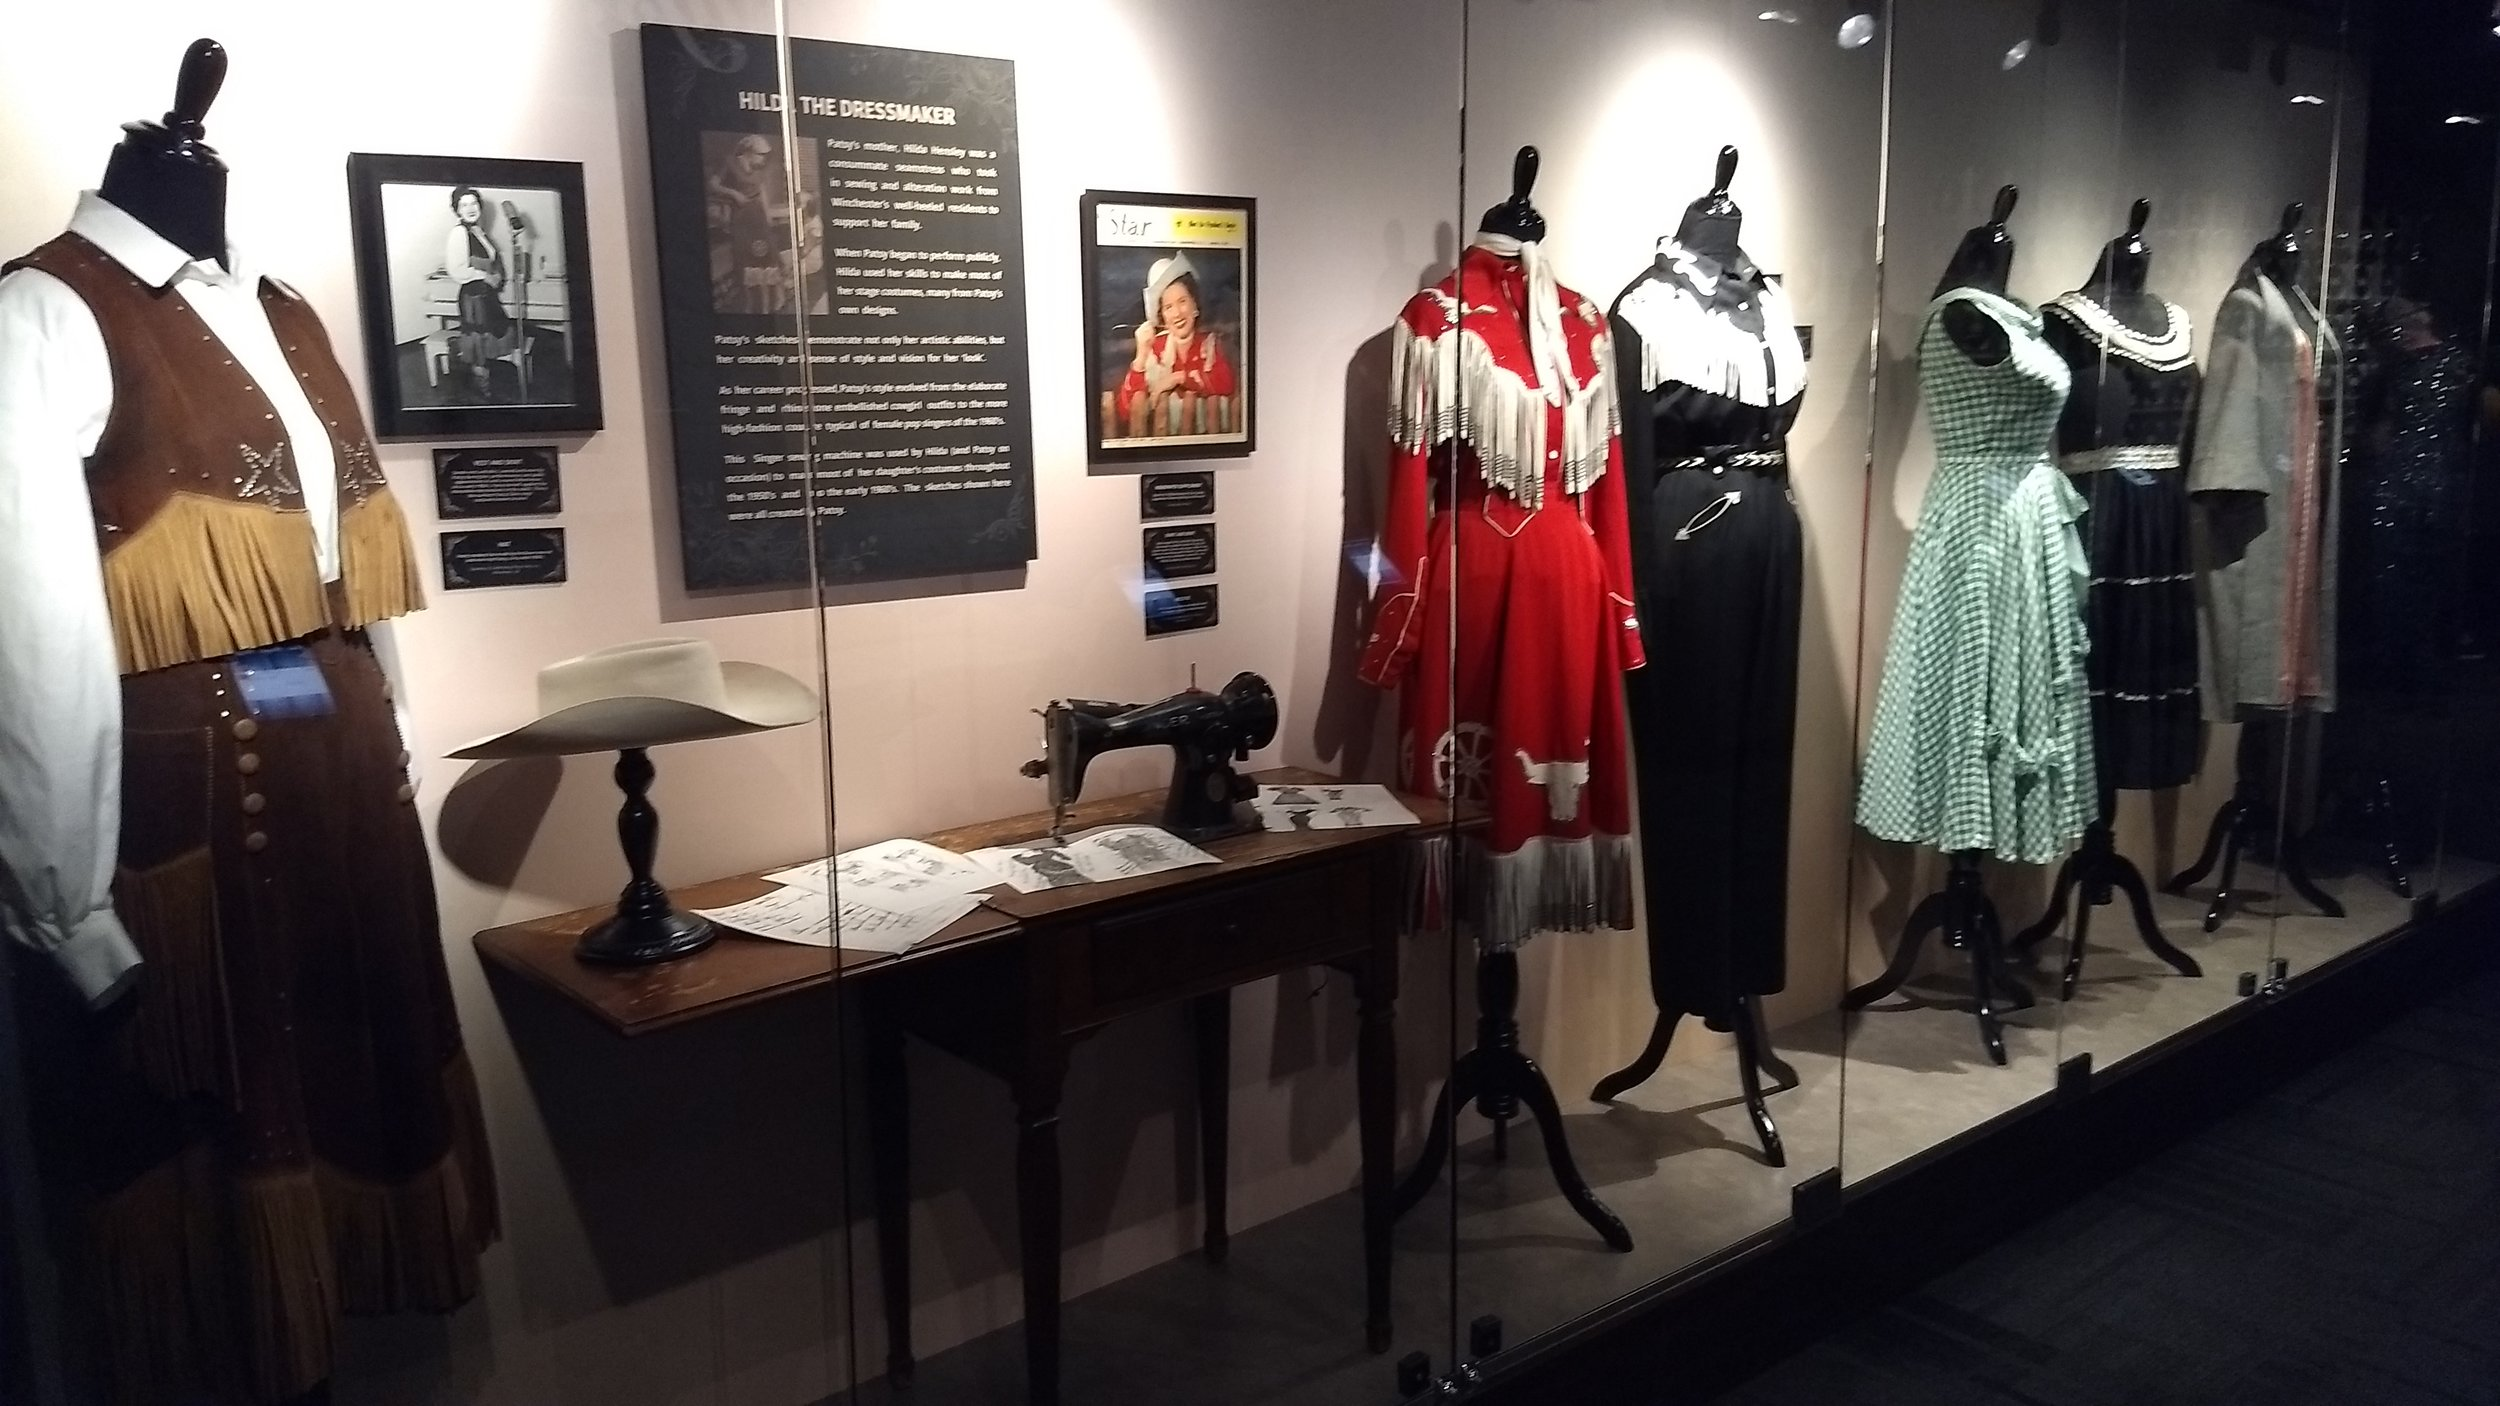 Patsy Cline's mother Hilda was a seamstress. She made all of Patsy's performance outfits throughout her career.